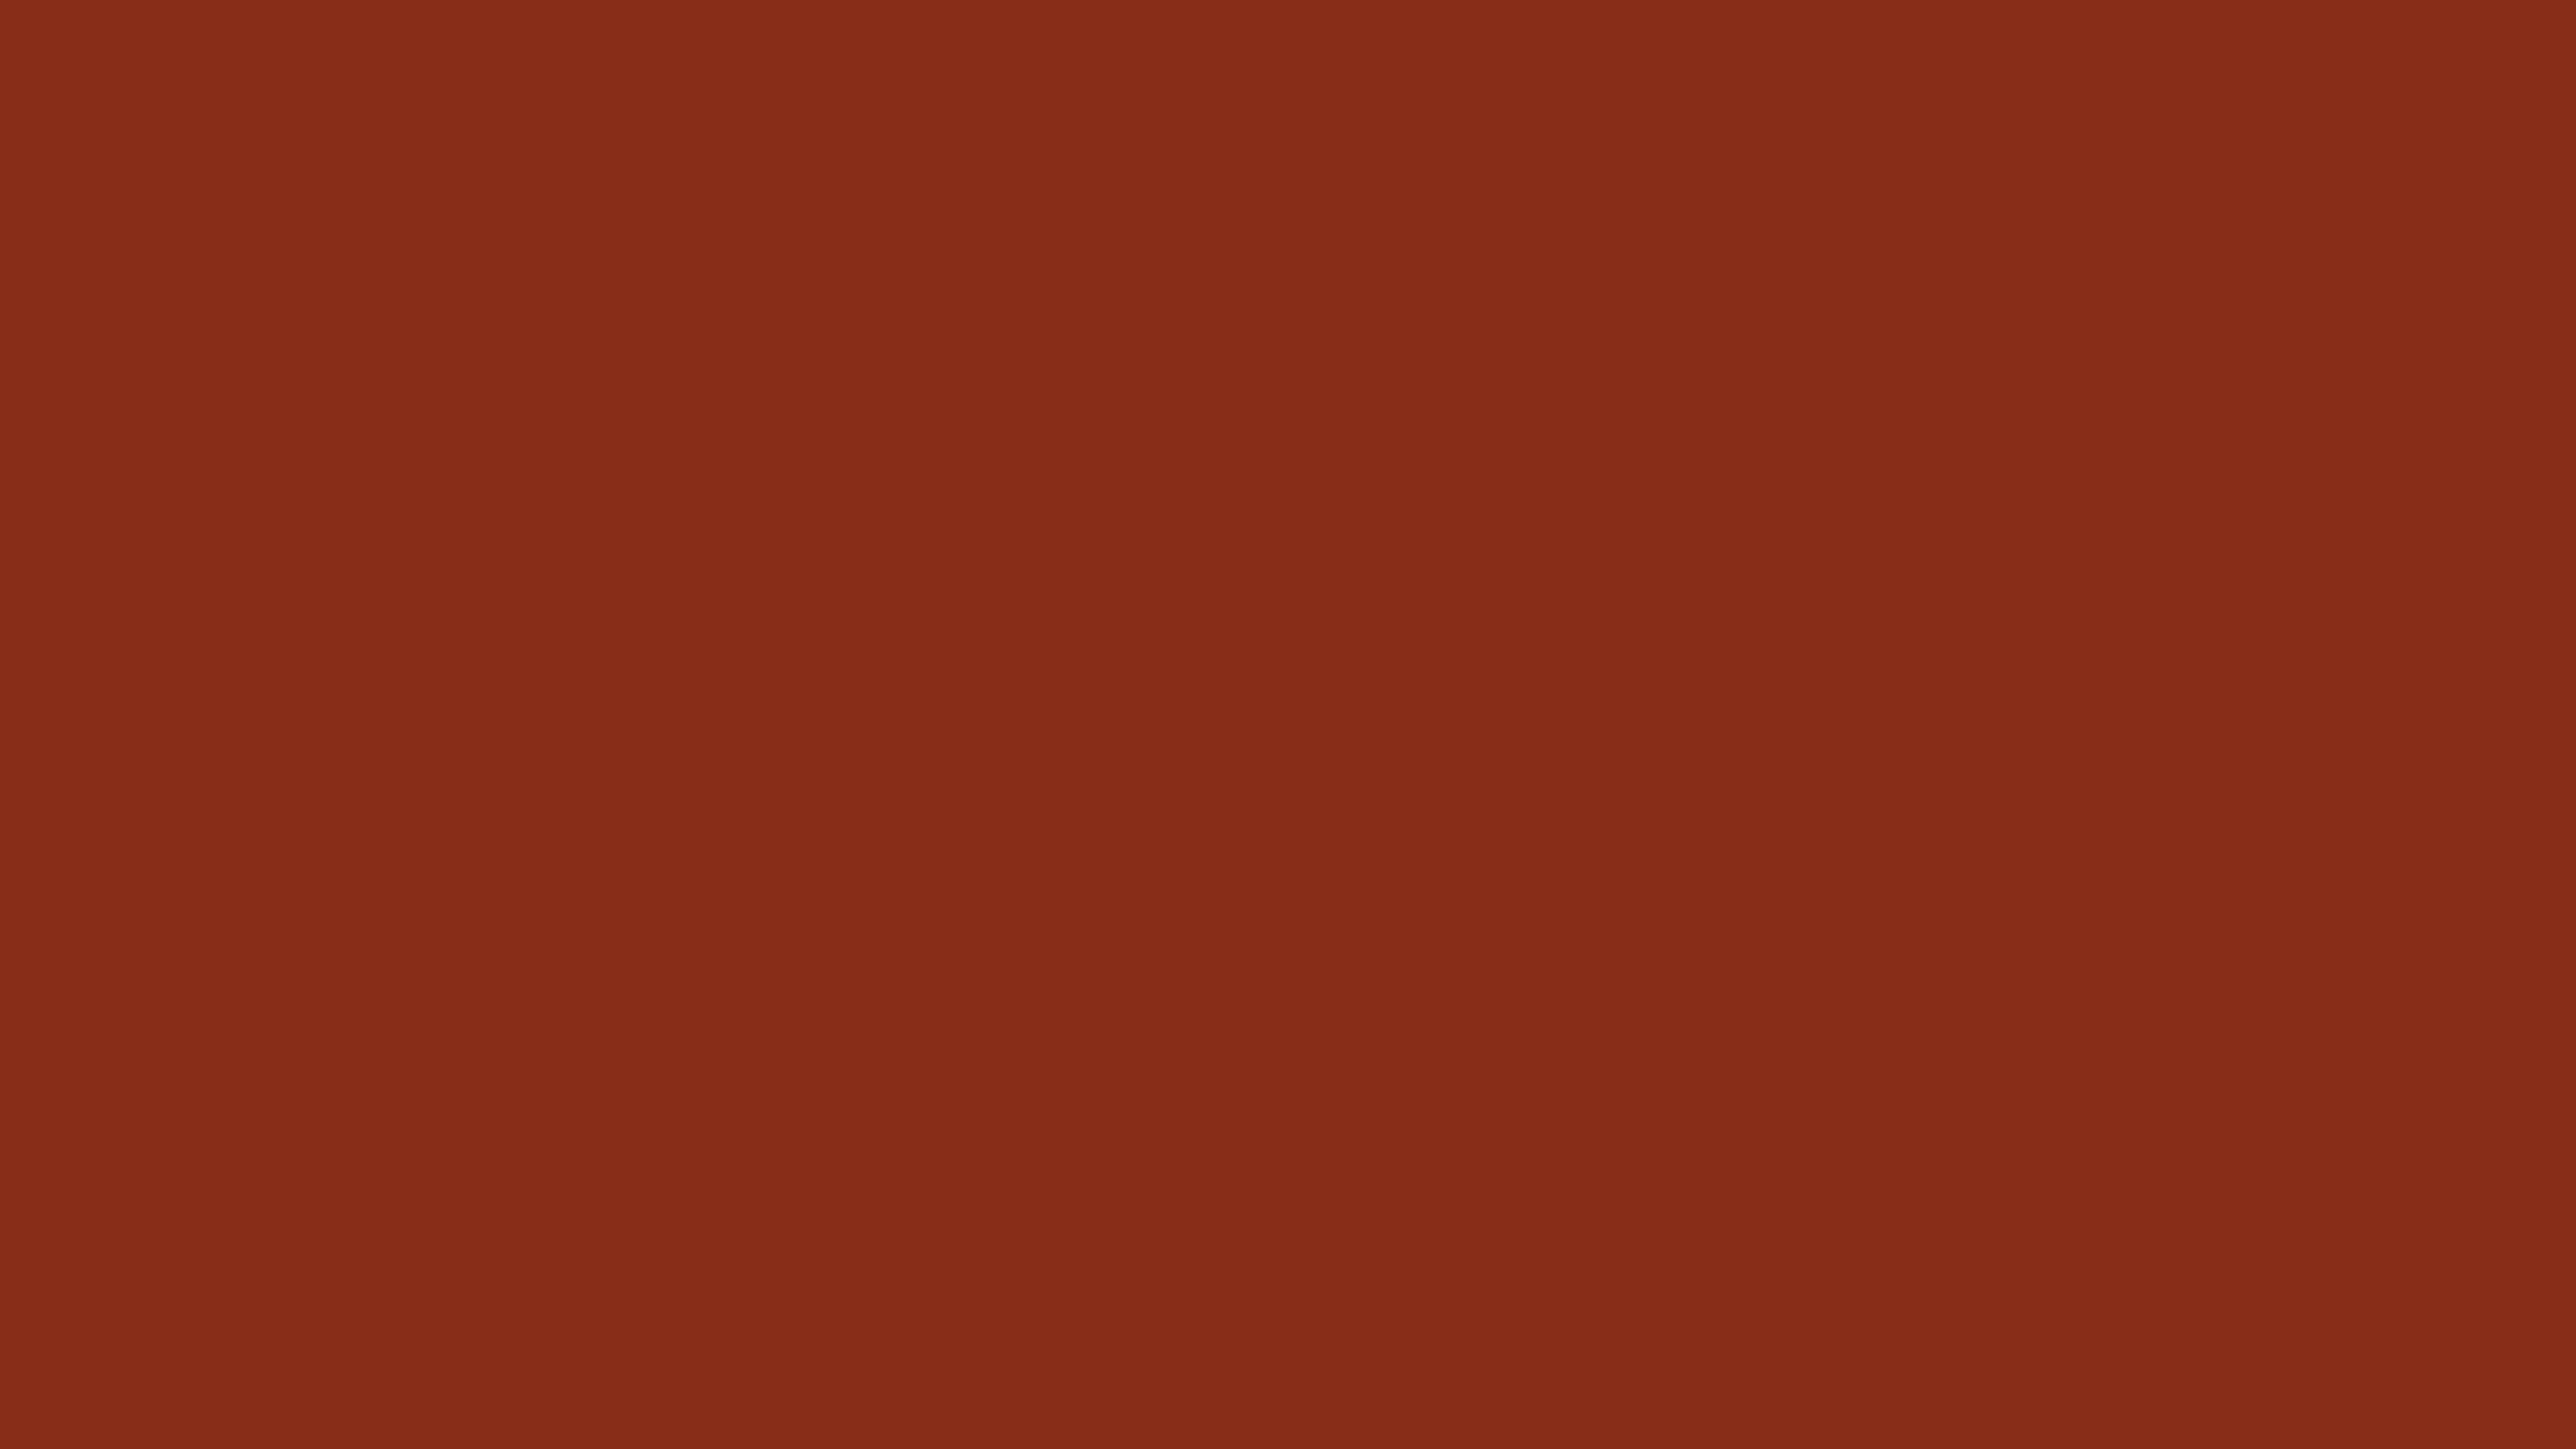 5120x2880 Sienna Solid Color Background